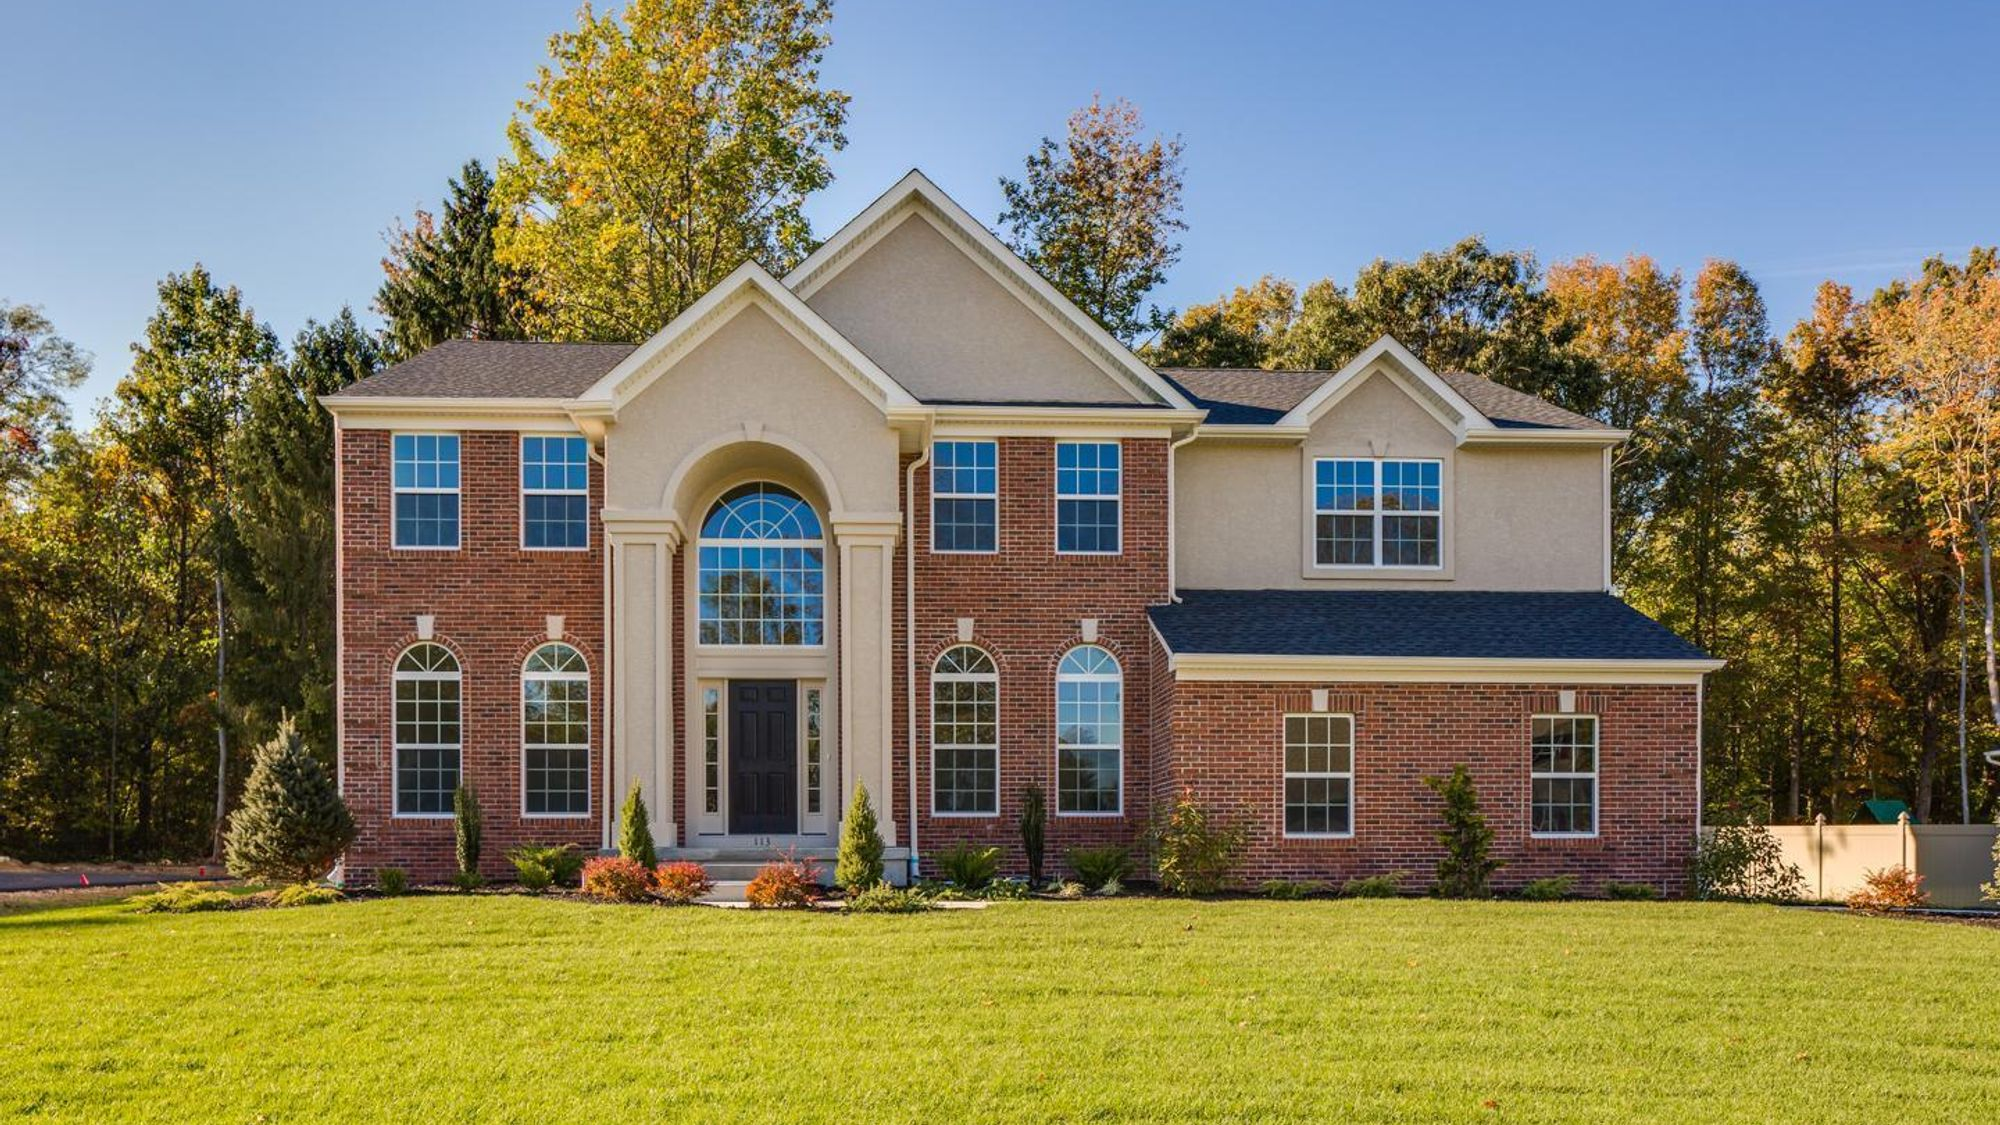 Exterior of the Baldwin Traditional model luxury new home in south NJ with brick front and soaring 2 story columns and transom windows.